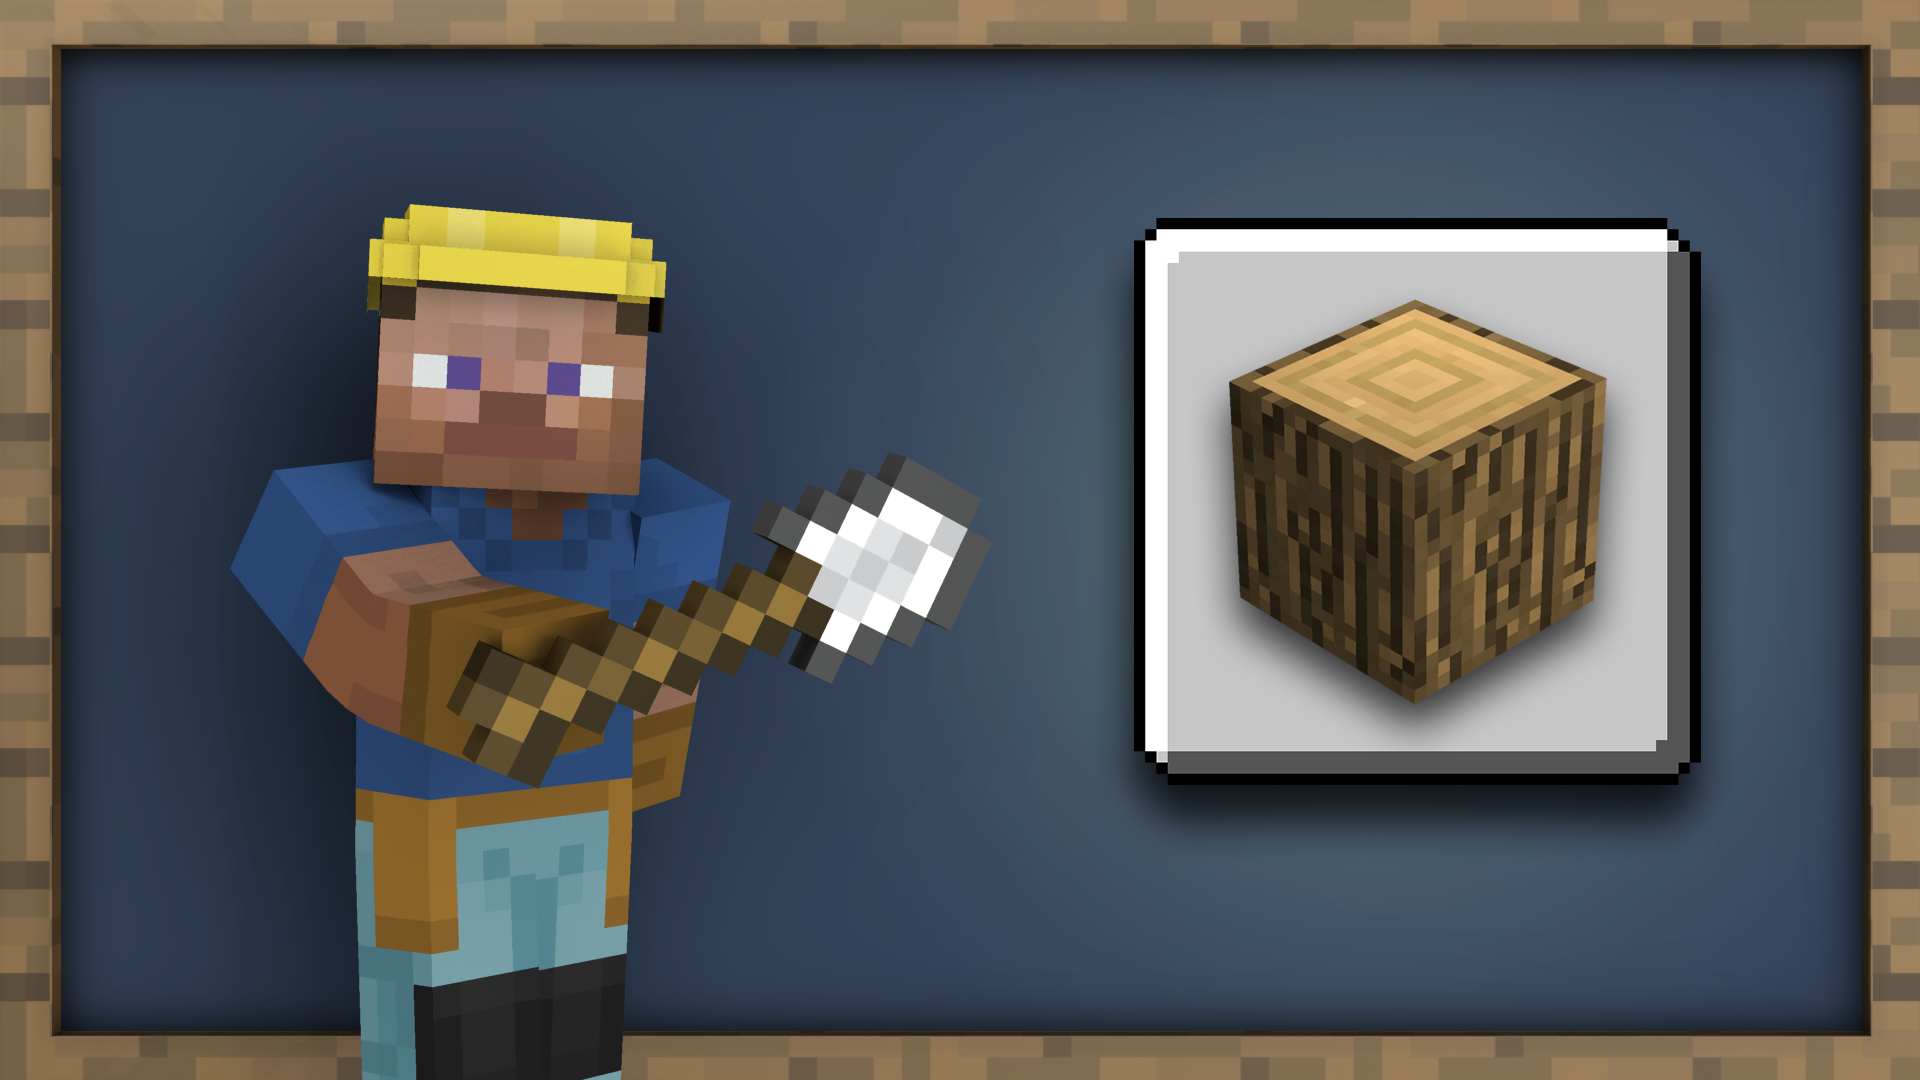 Getting Wood achievement for Minecraft on Nintendo Switch